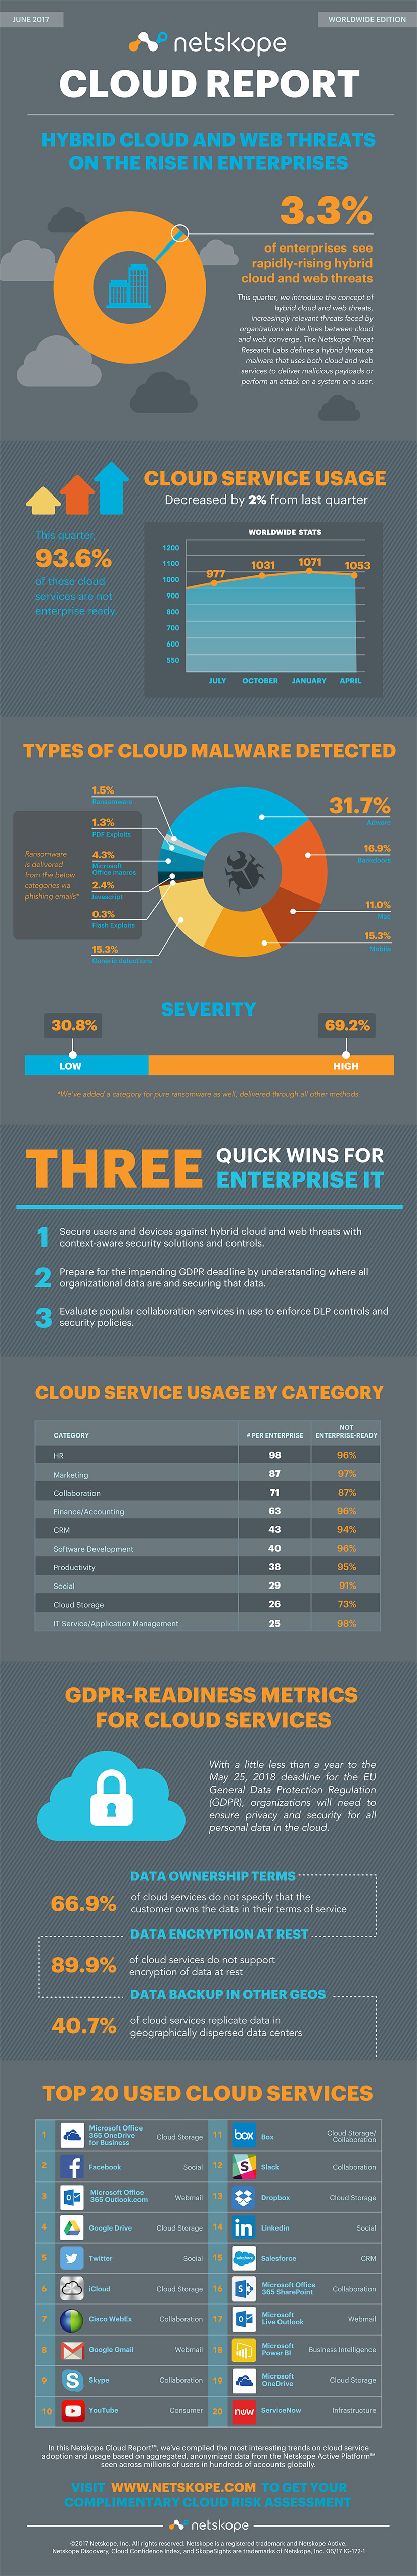 Netskope Cloud Report - June 2017 - Infographic